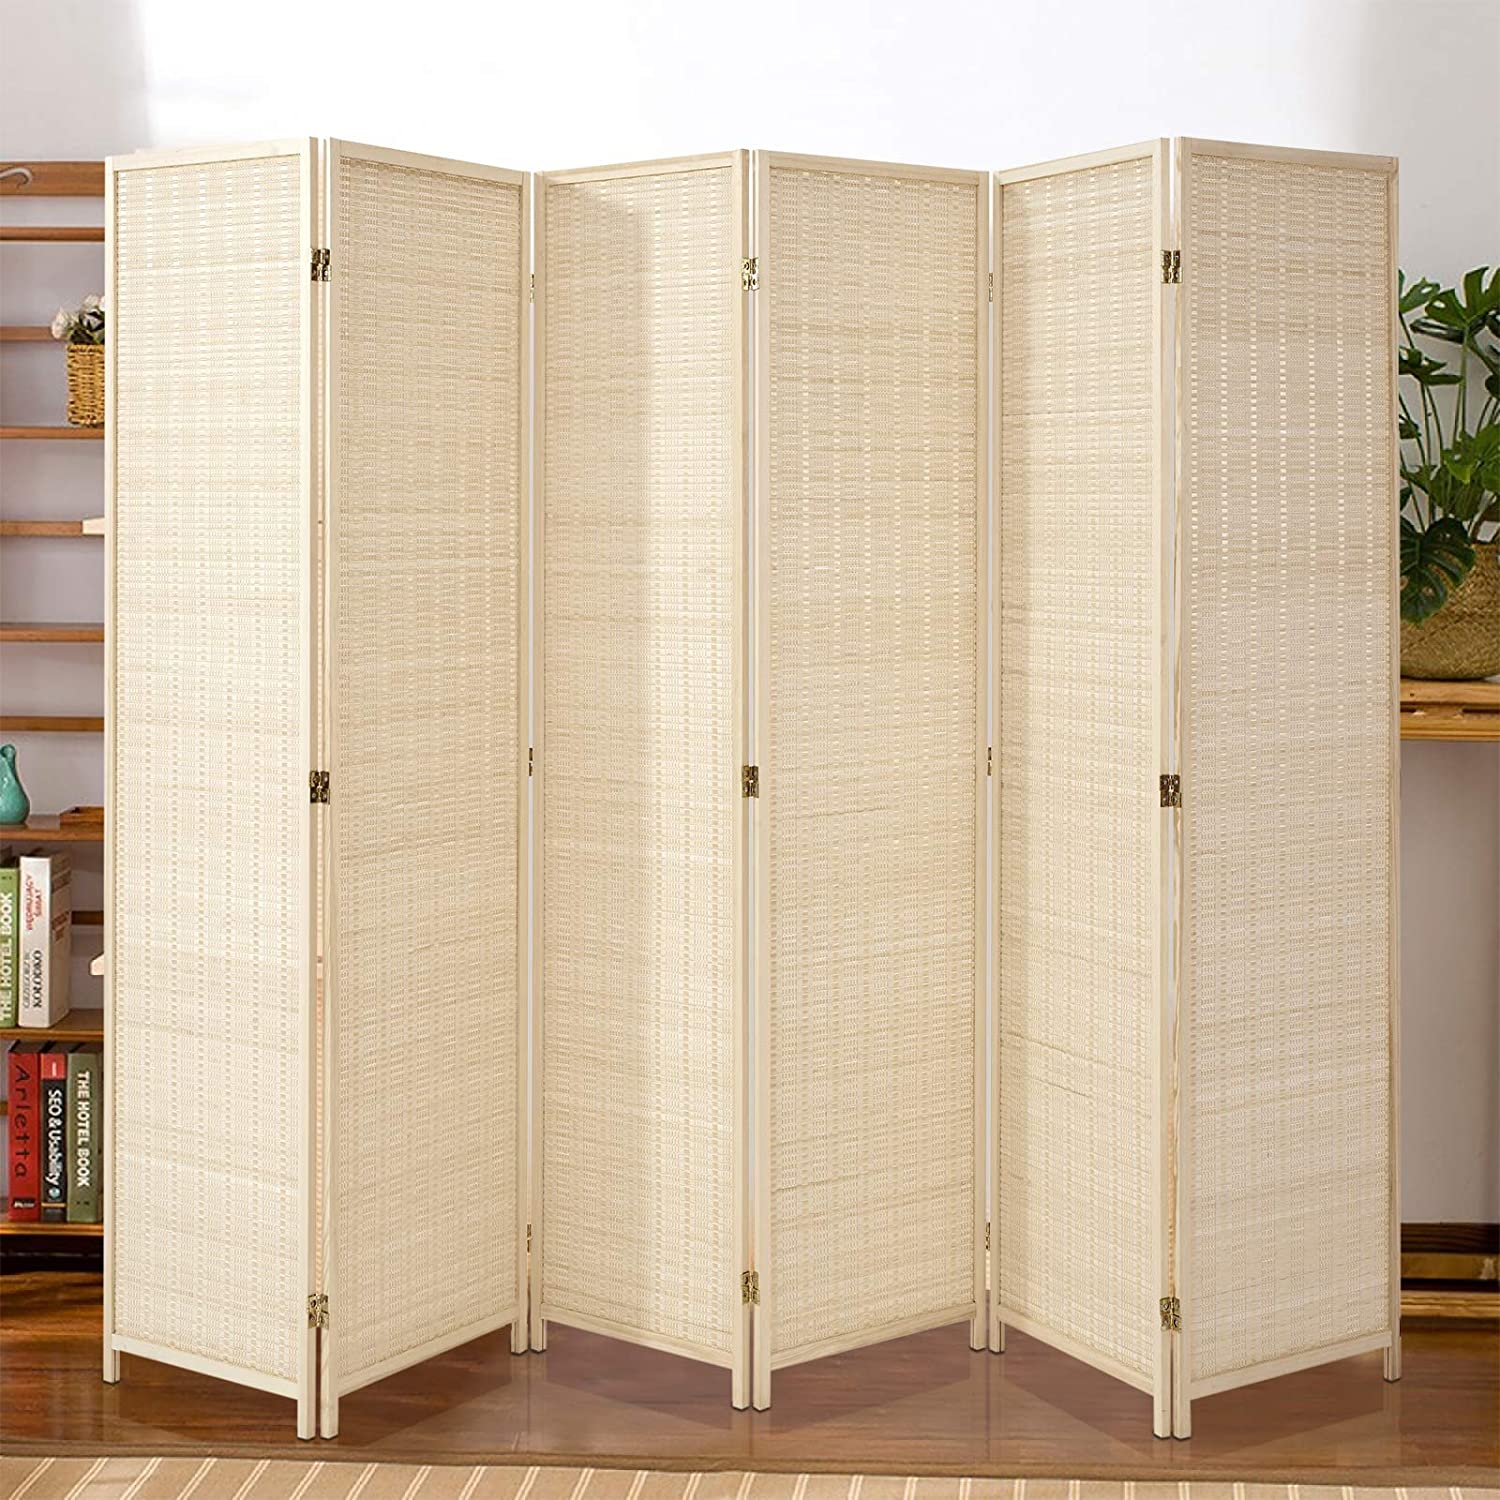 Esright 6 Panel Bamboo Room Divider Tall Privacy supreme Folding Ft S online shop